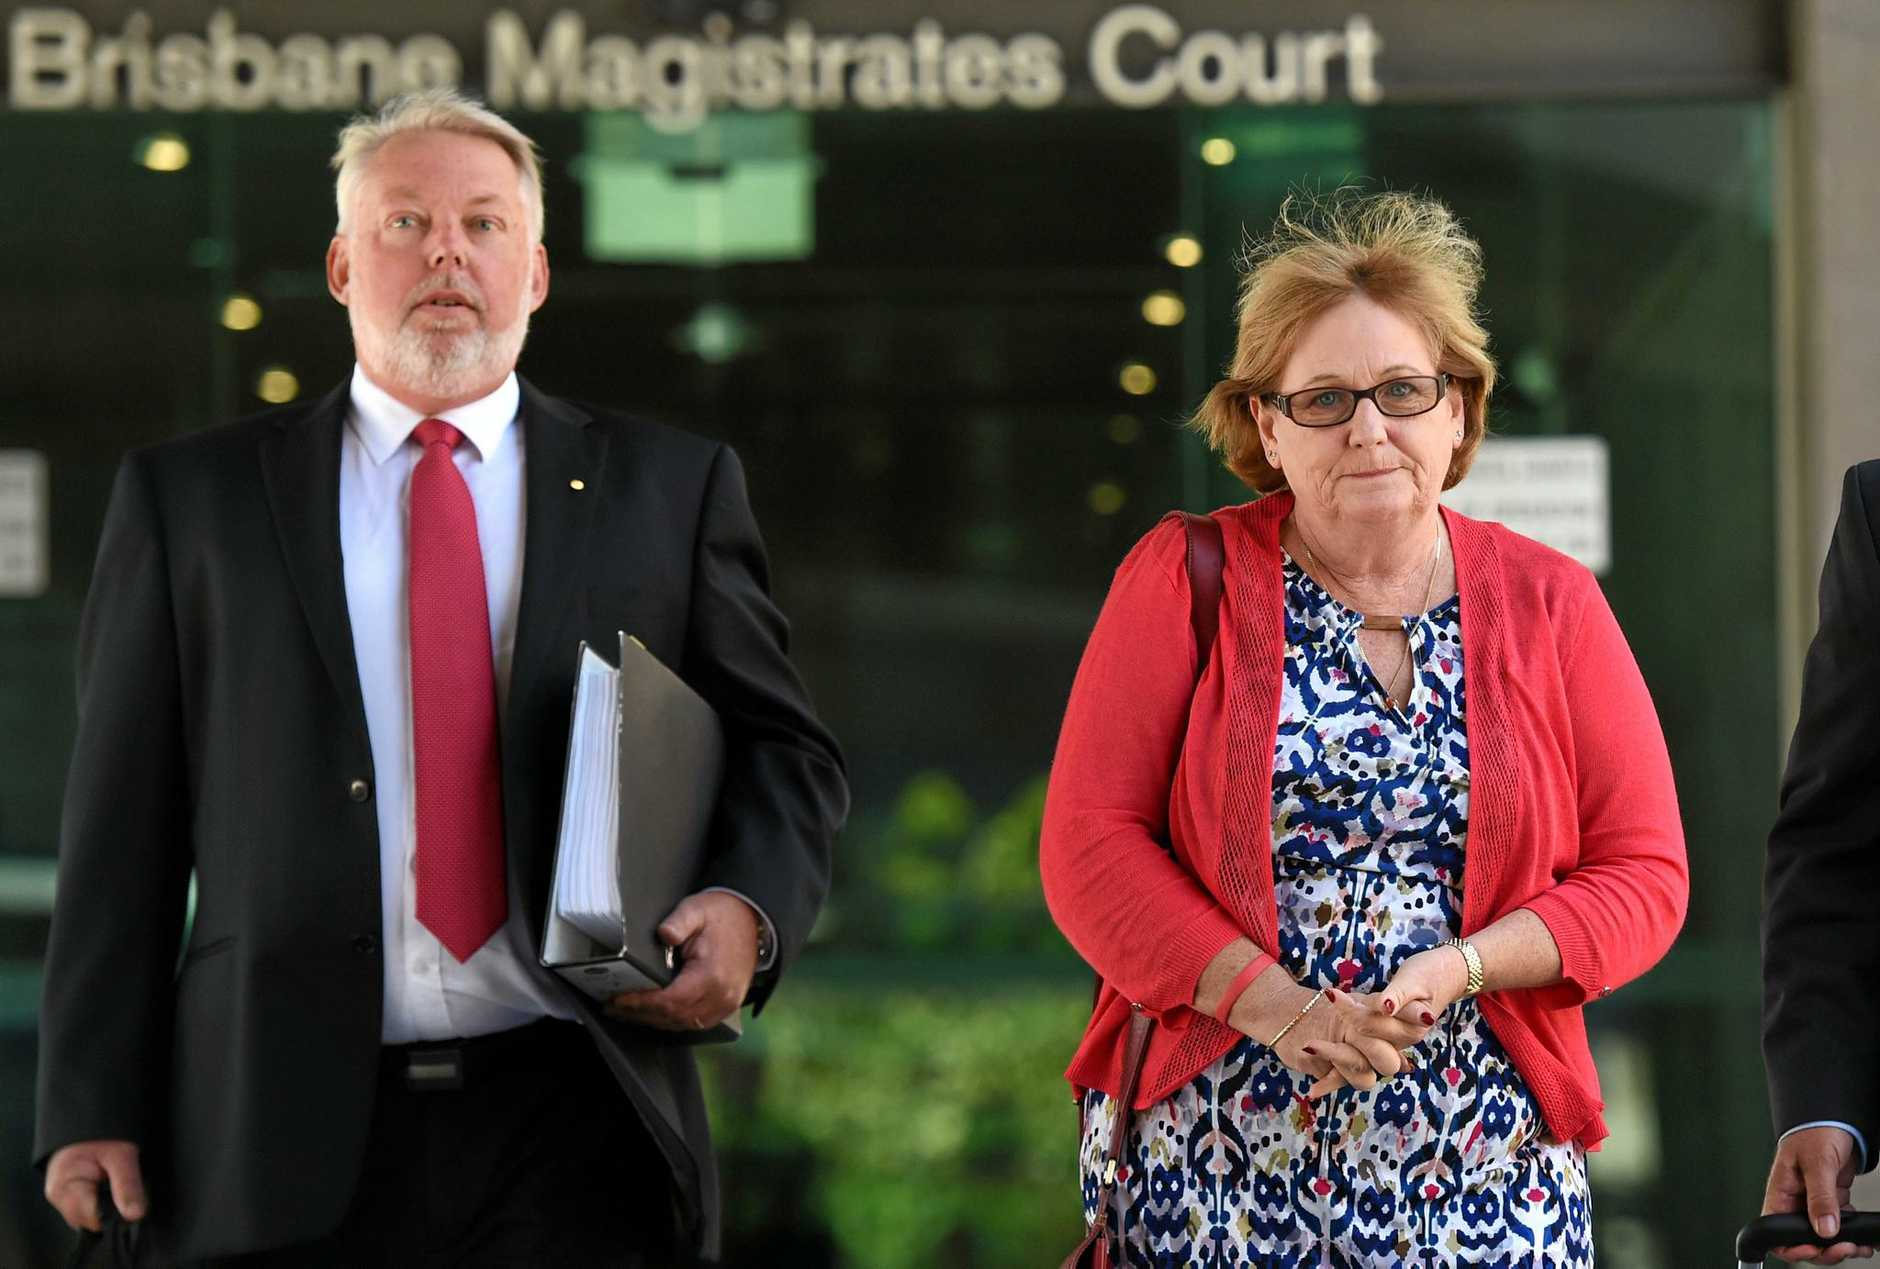 Bruce and Denise Morcombe leave last year's inquest into the police response to the disappearance and subsequent murder of their son Daniel in 2003 on the Sunshine Coast. (AAP Image/Dan Peled)